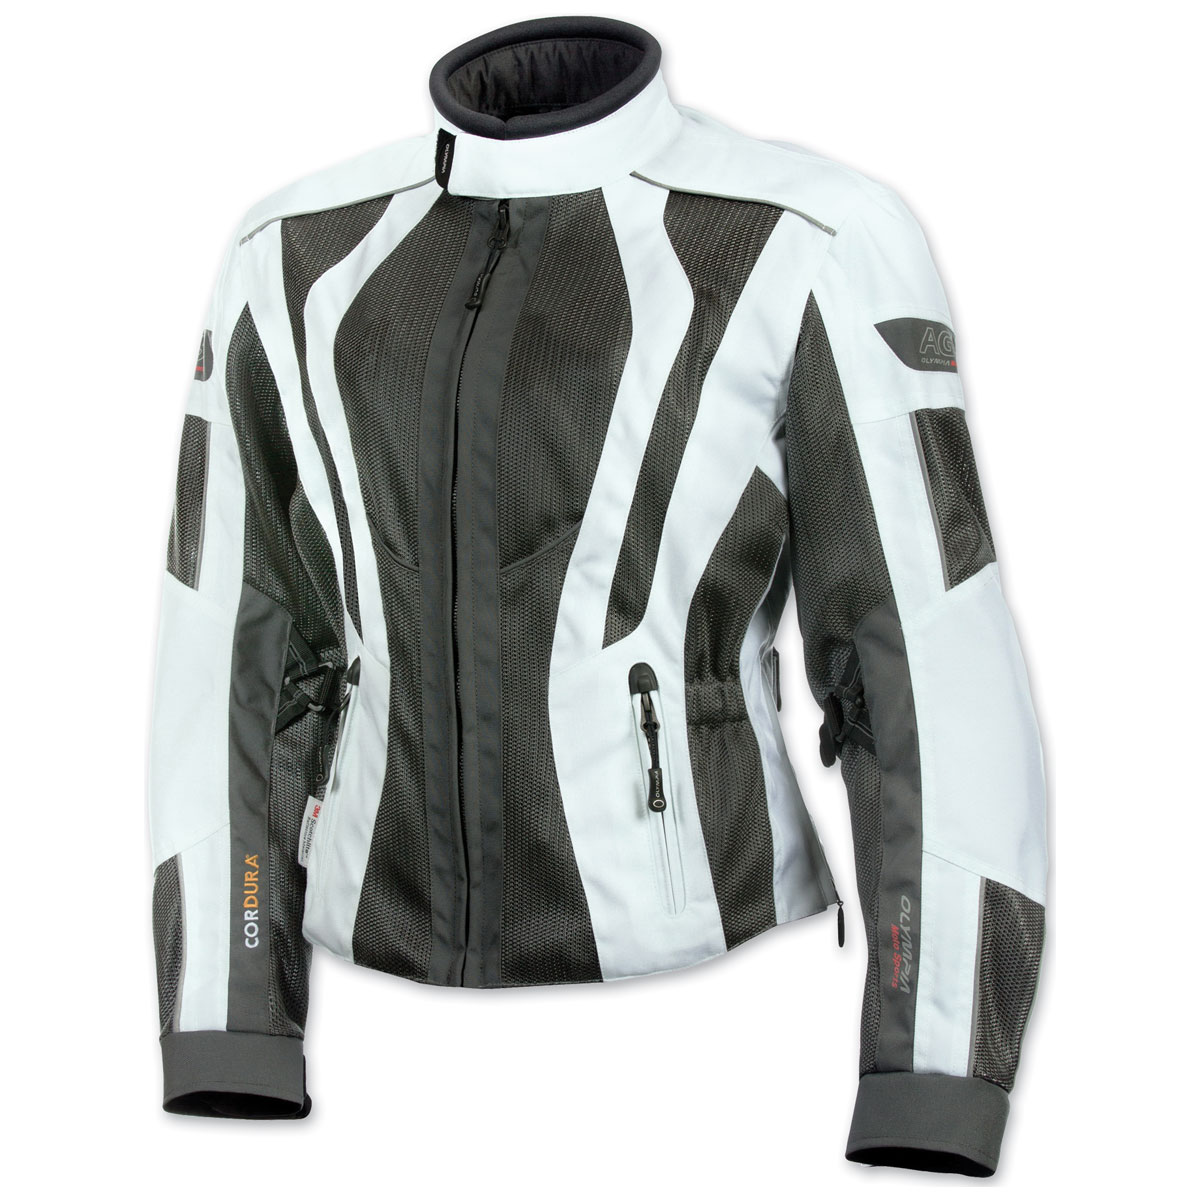 Olympia Moto Sports Women's Airglide 5 Mesh Tech Ivory Jacket